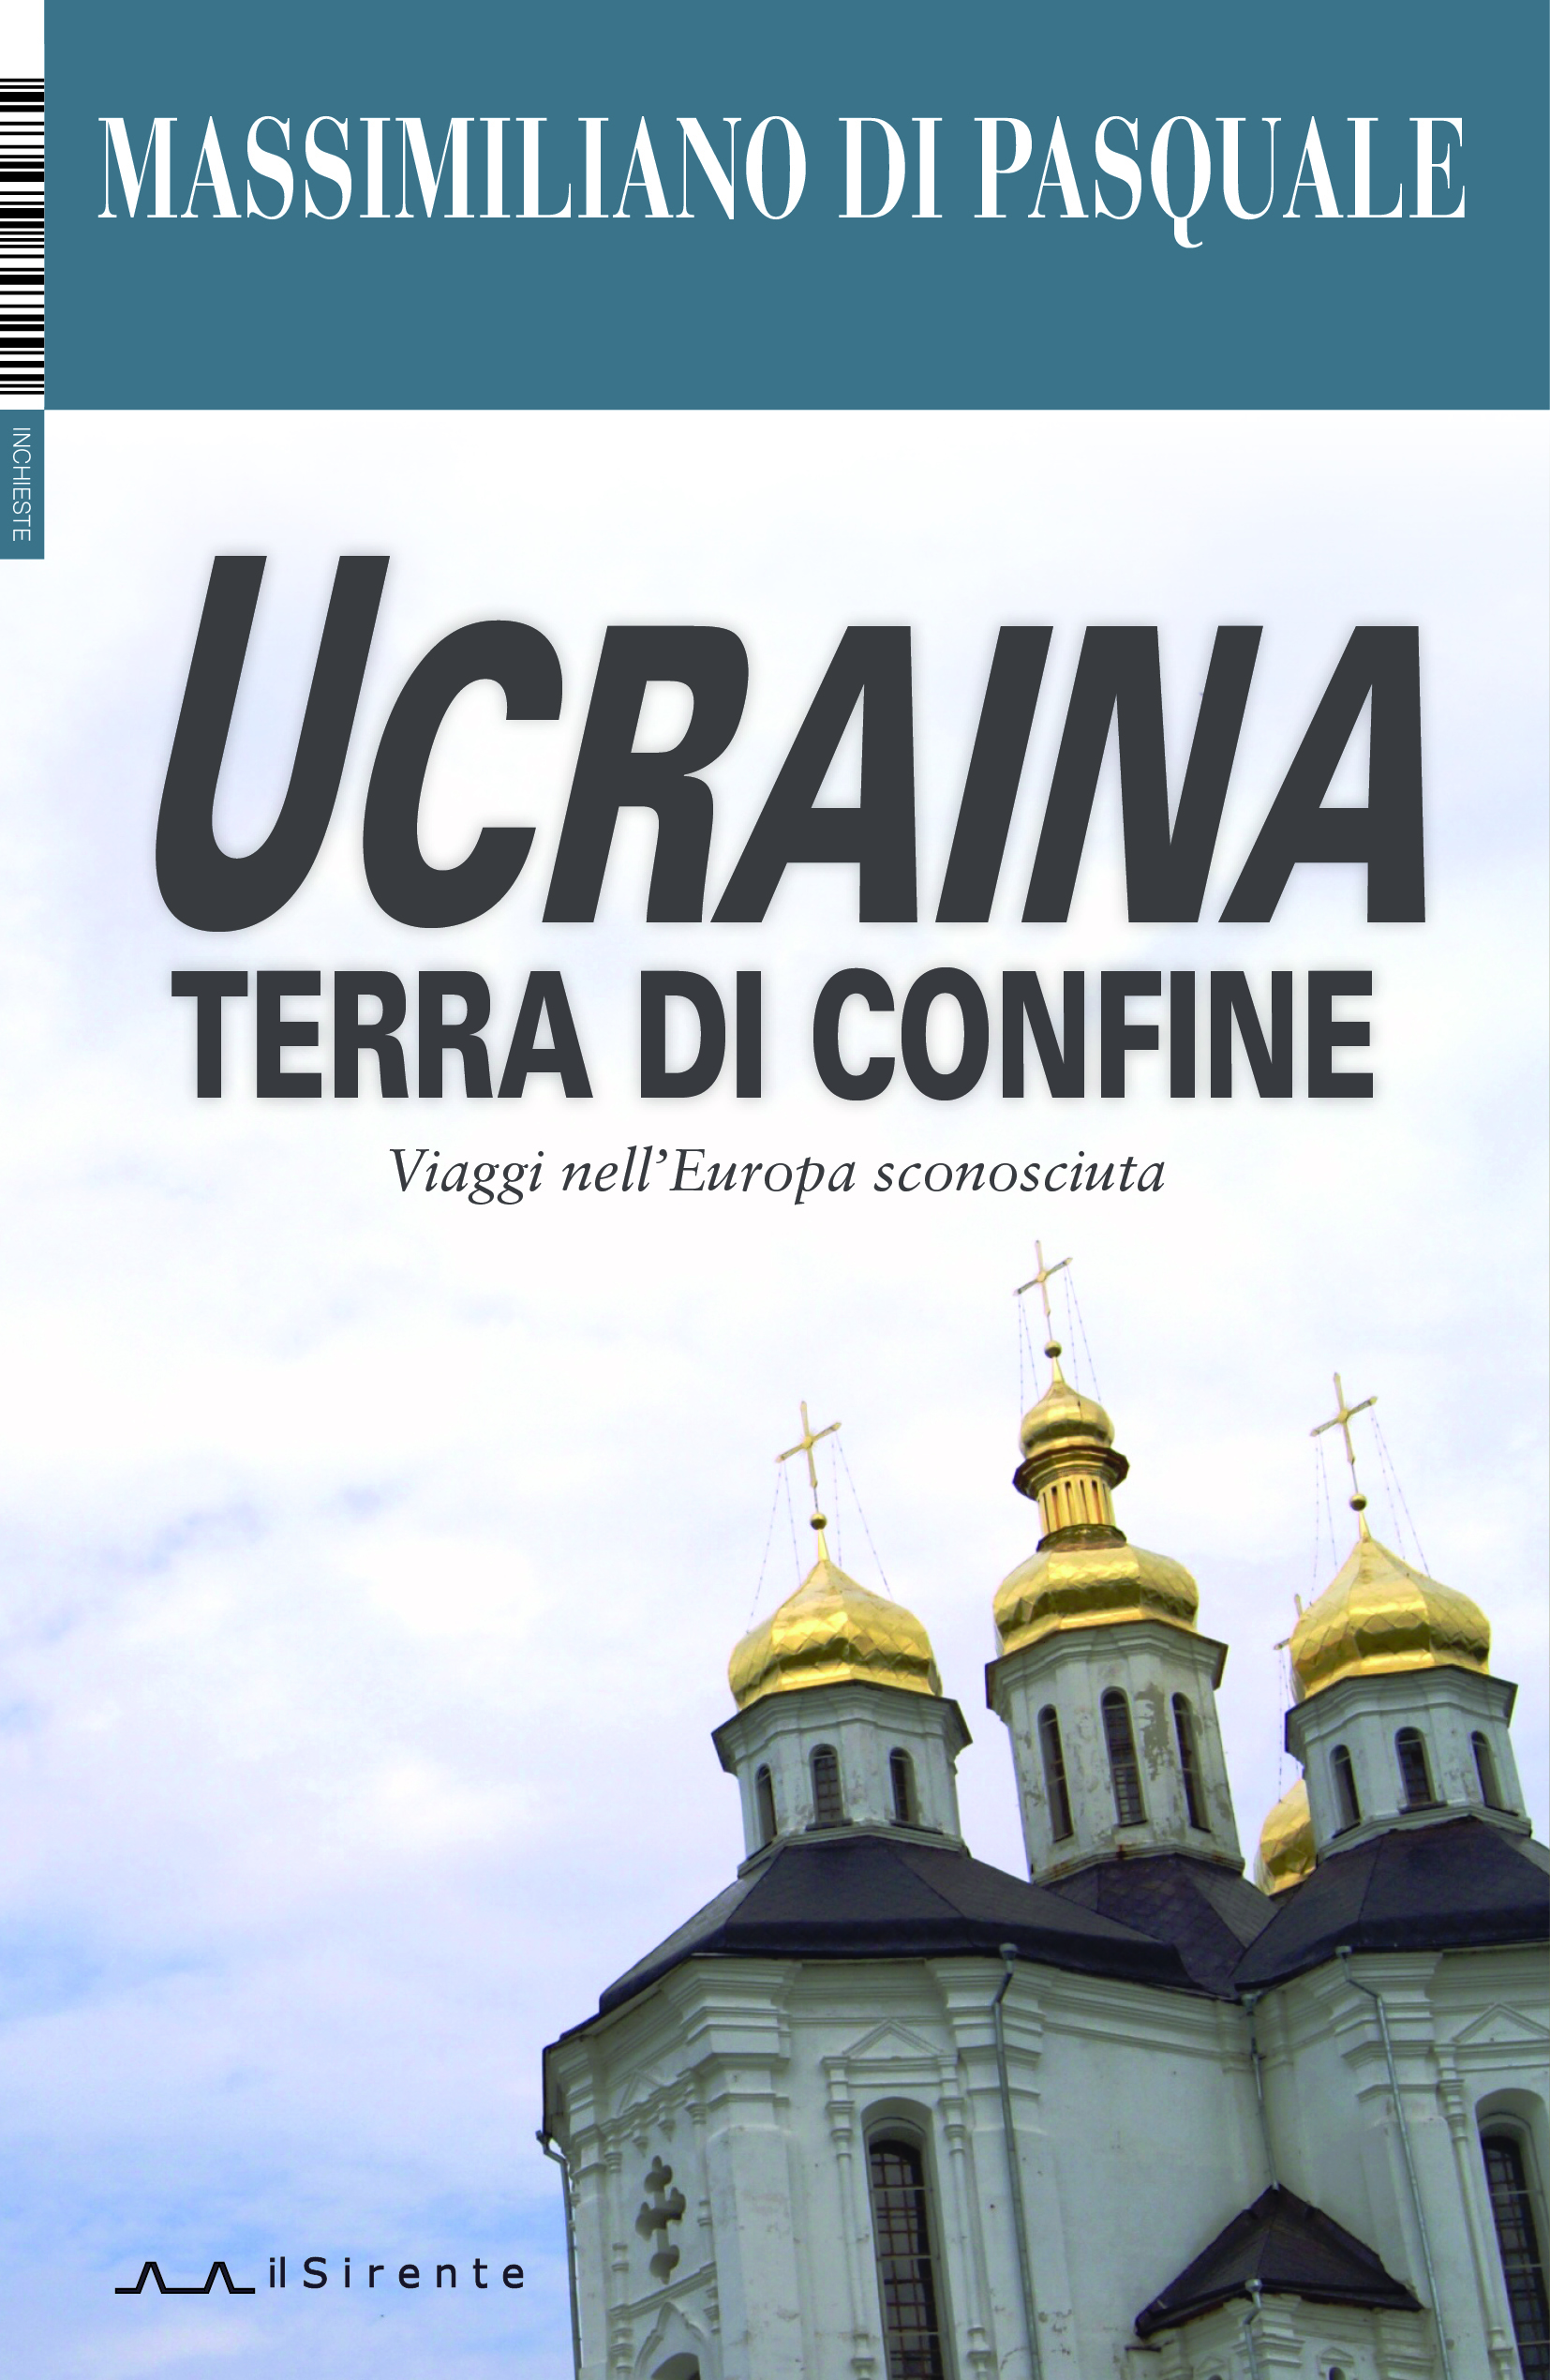 Ucraina terra di confine Book Cover